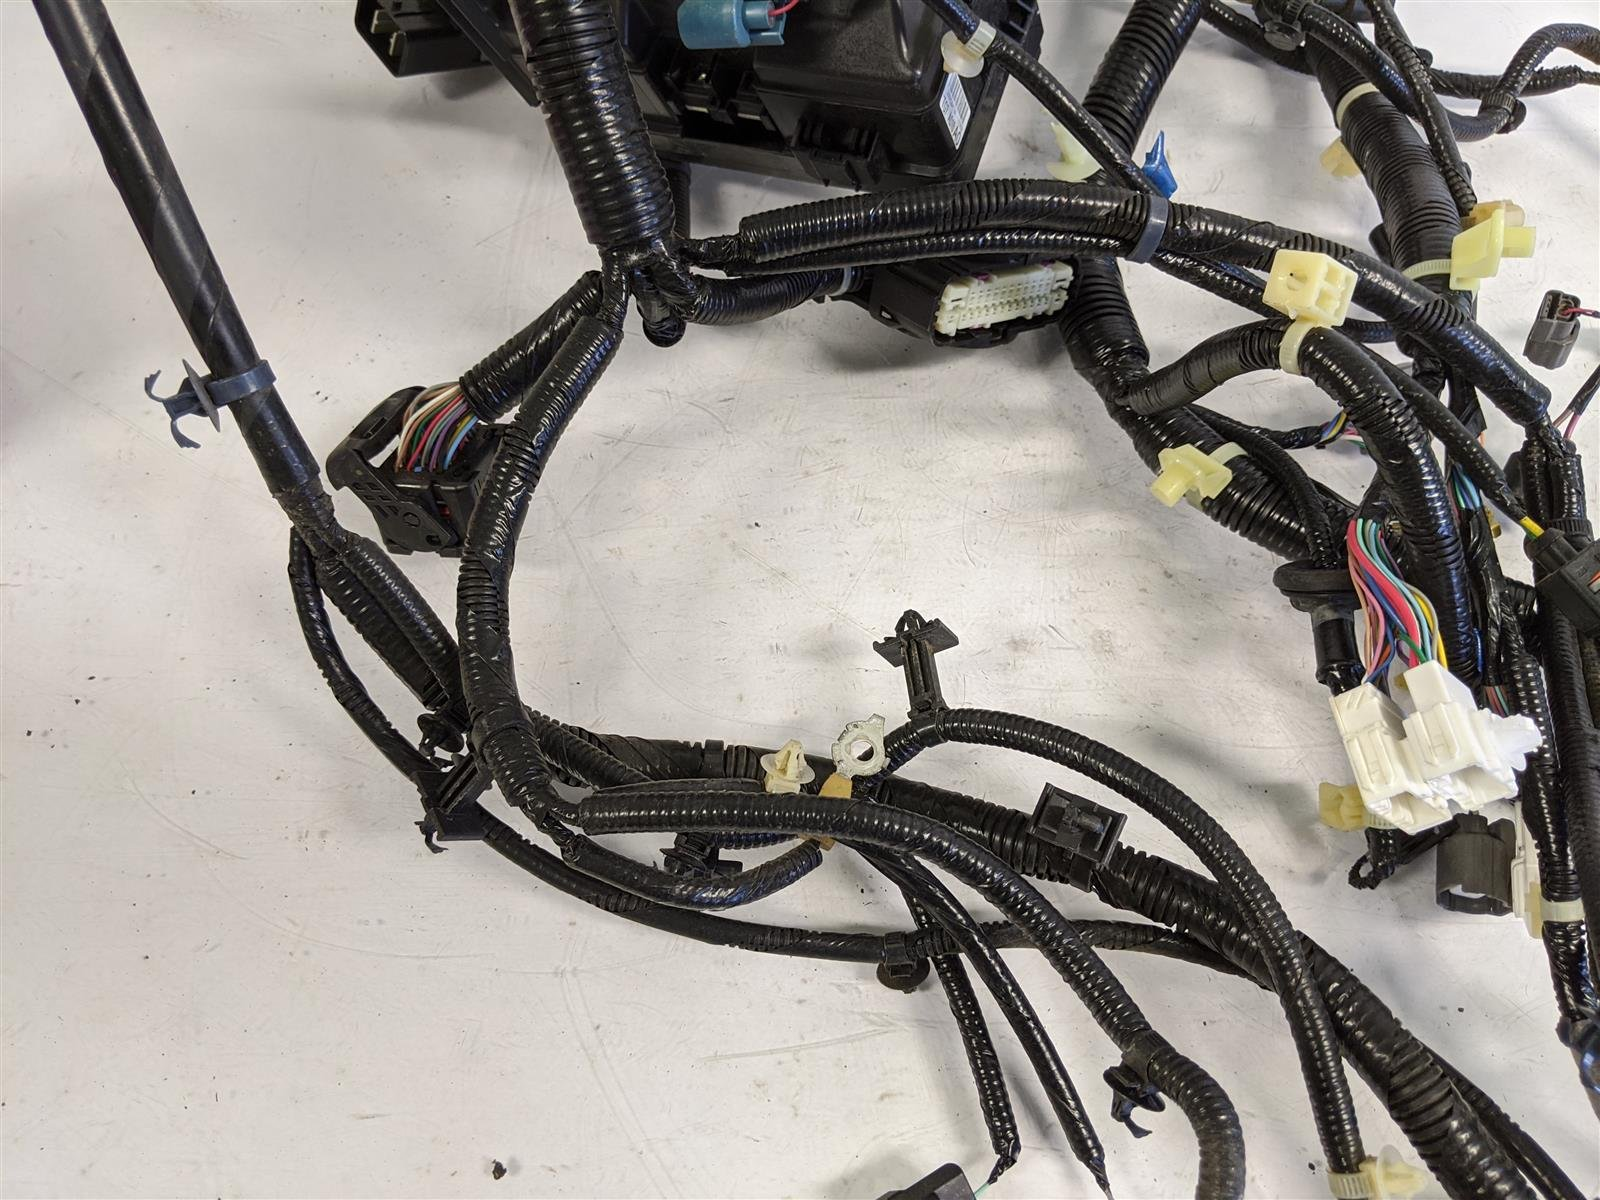 2017 Honda Pilot Passenger Cabin Wire Harness Replacement